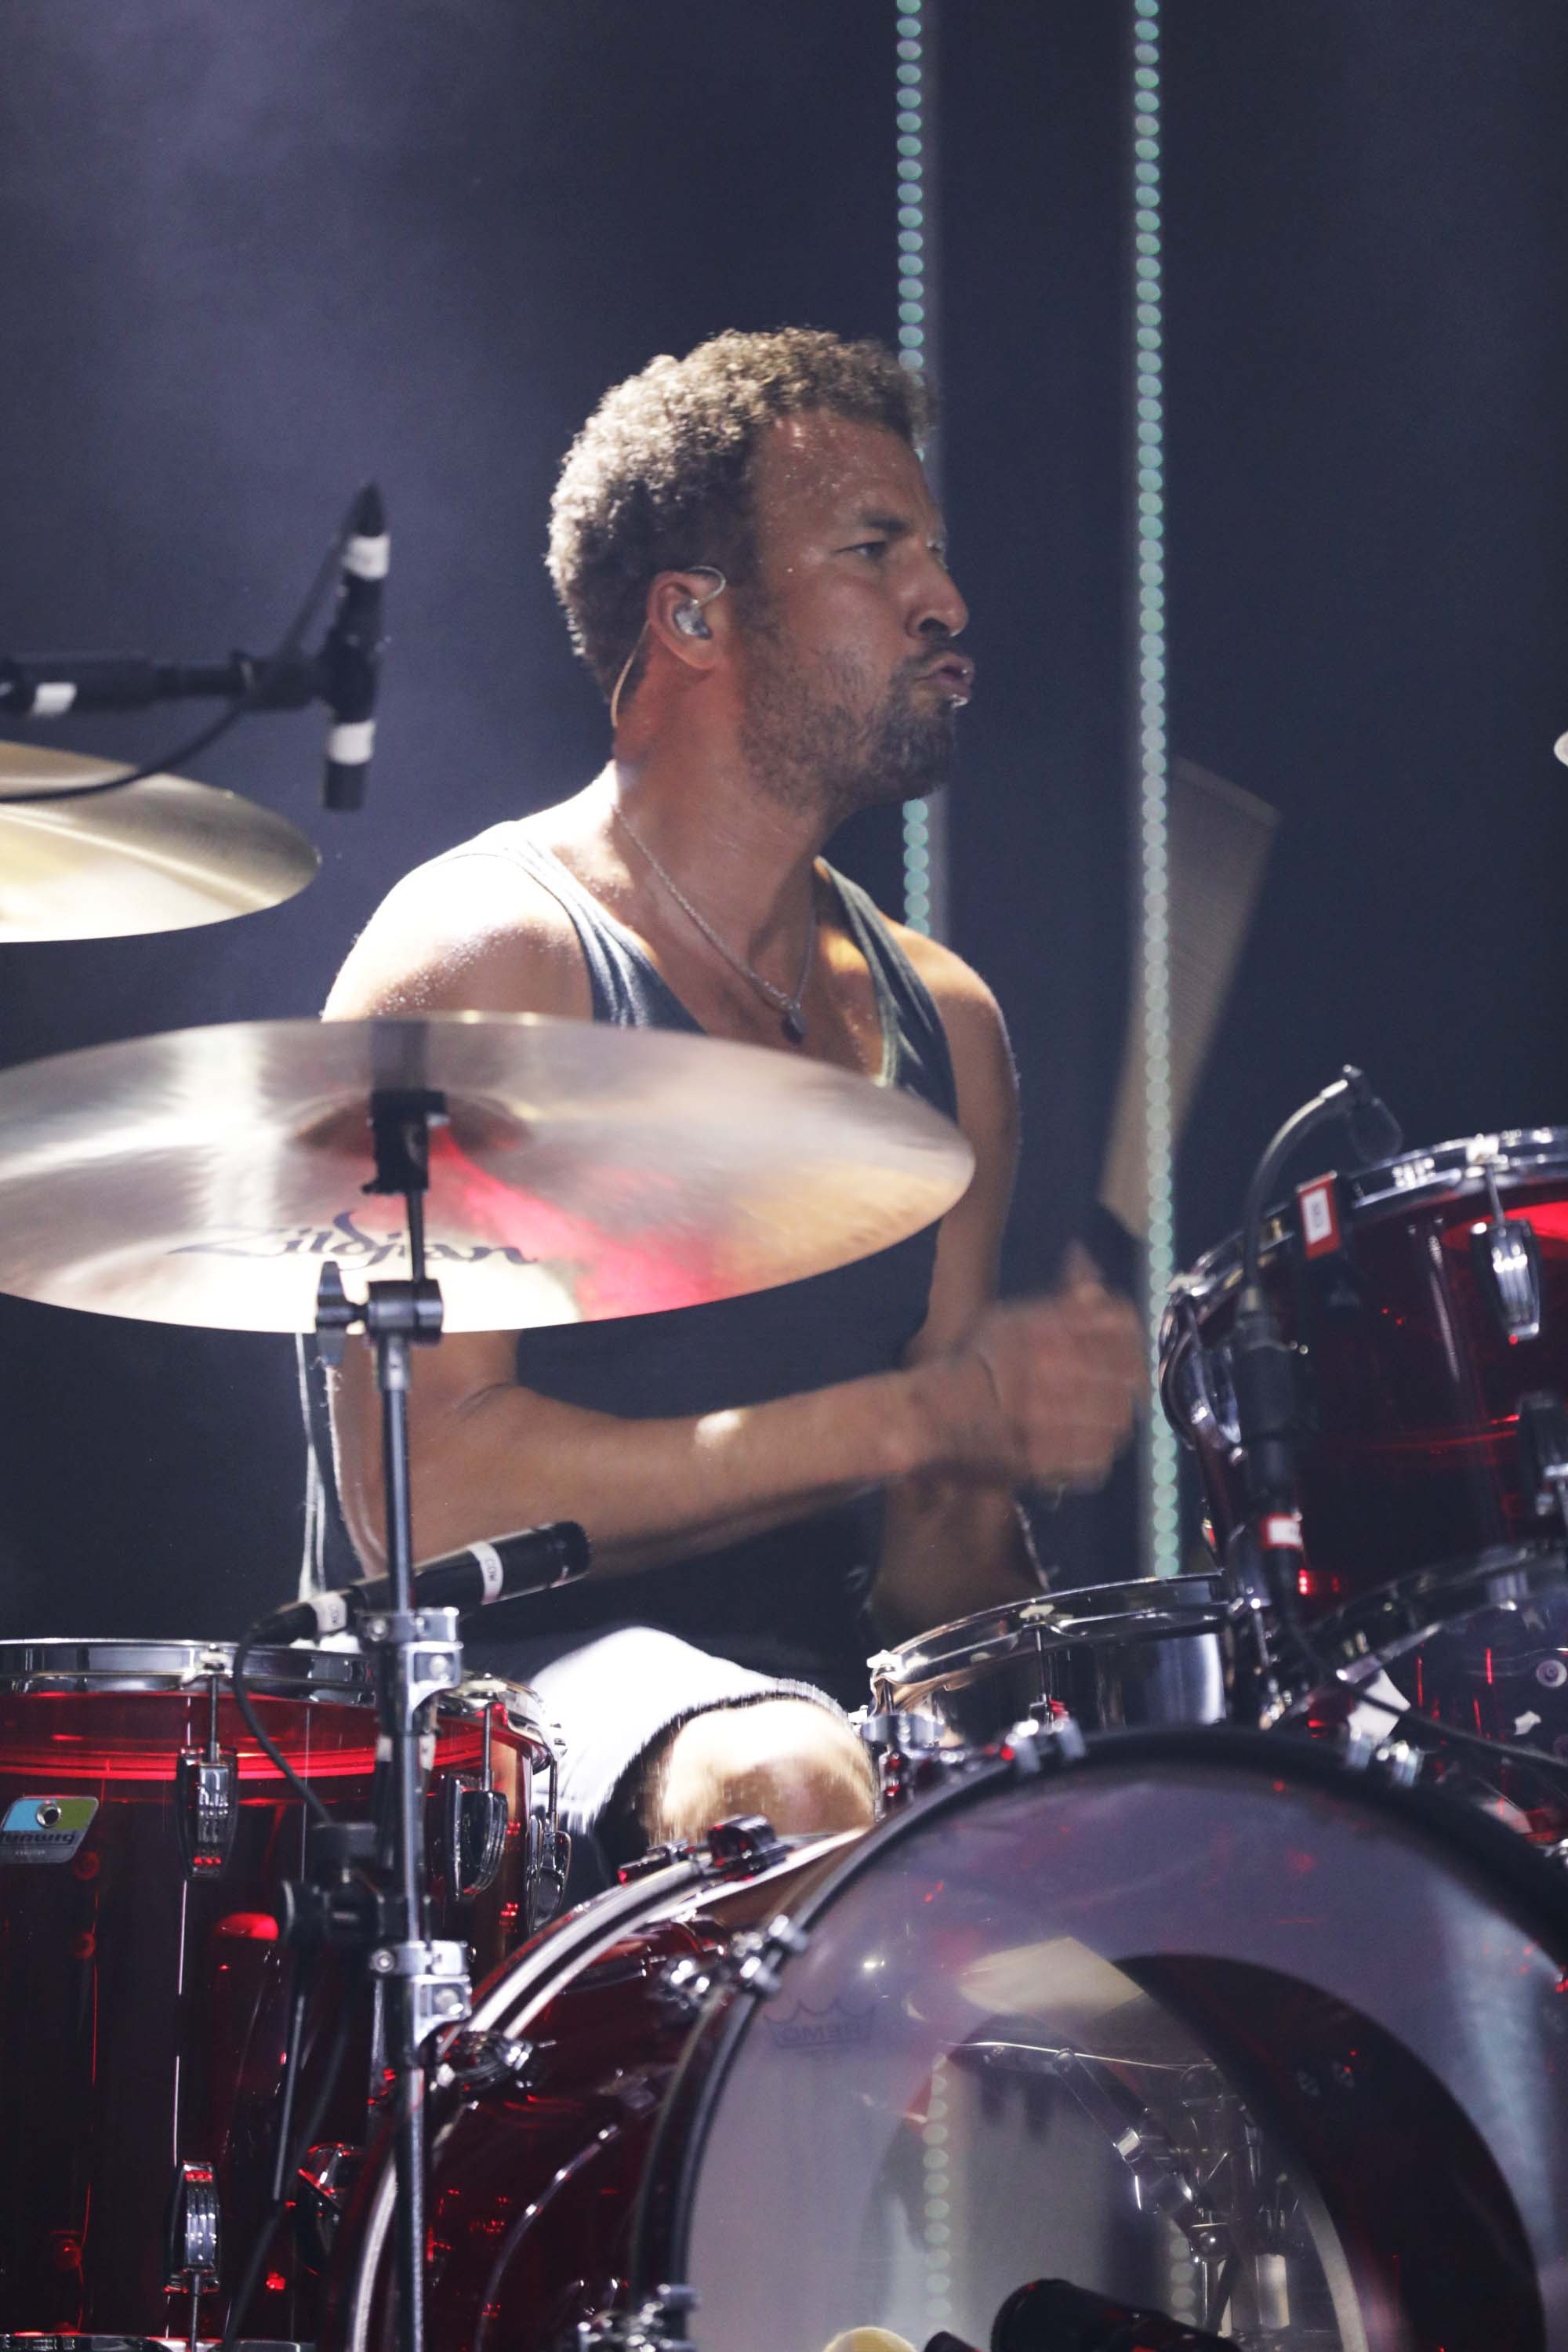 Drummer Jon Theodore onstage for Queens of the Stone Age. Photo: Lmsorenson.net